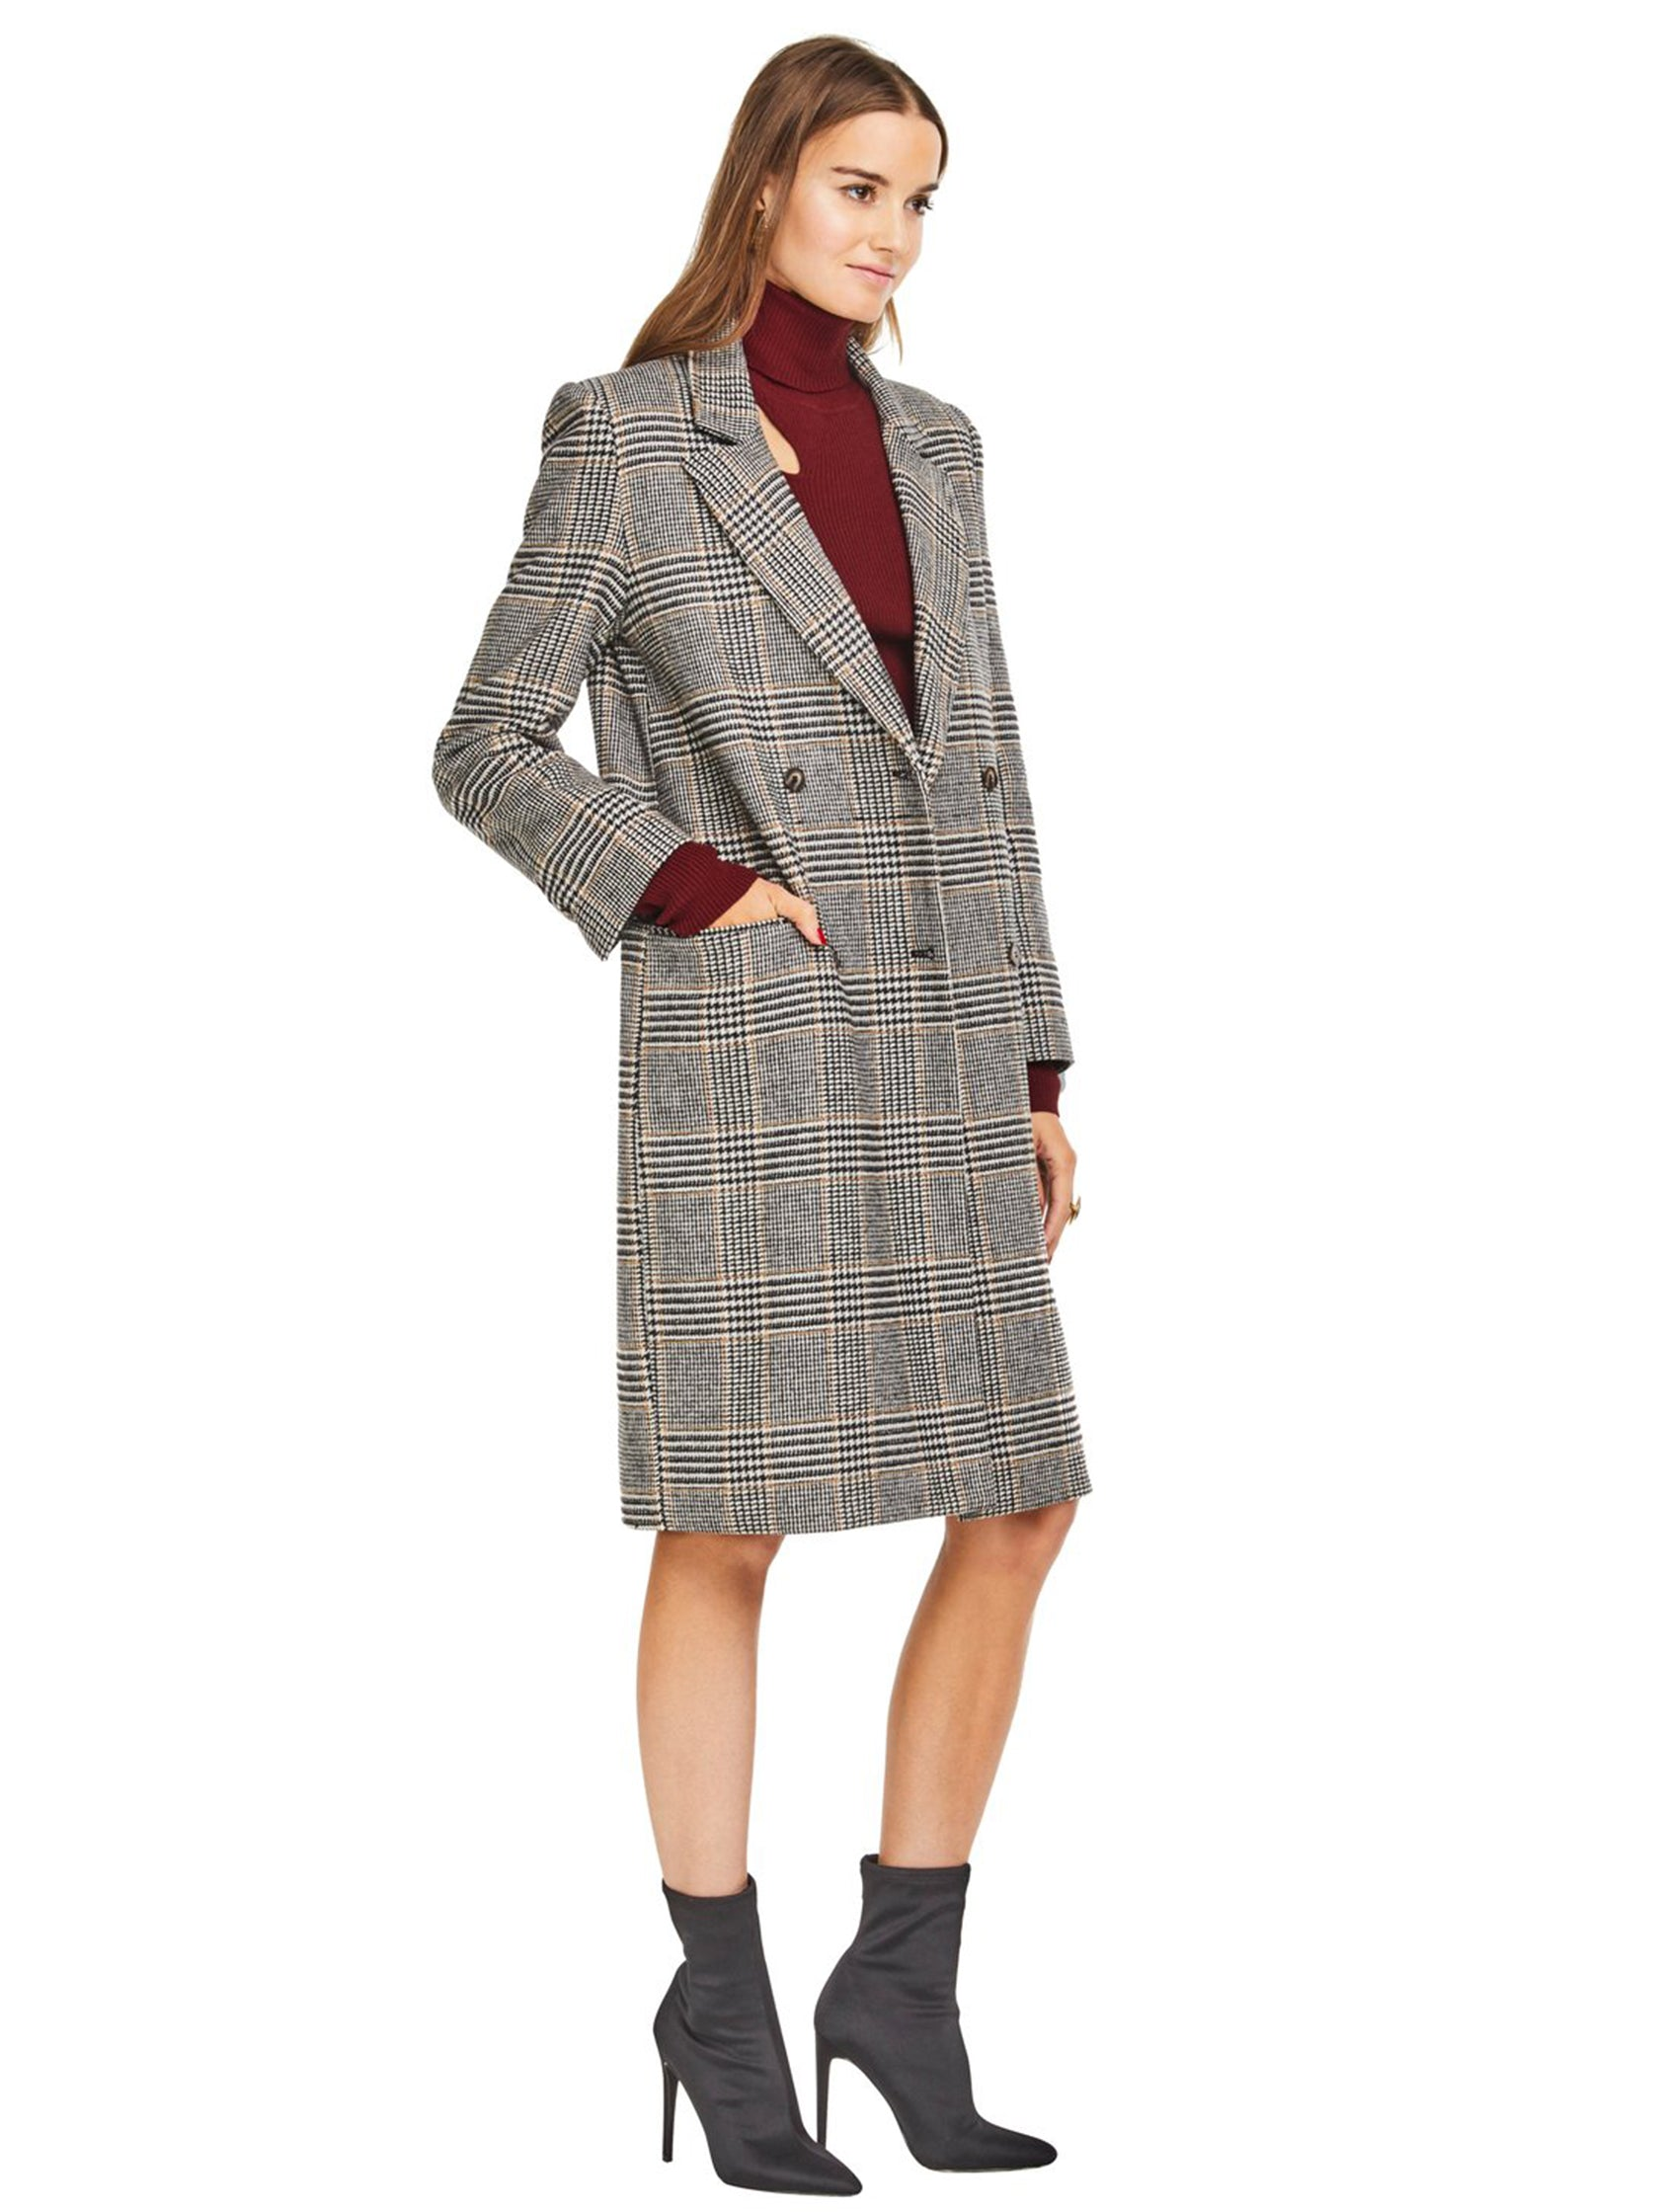 Woman wearing a jacket rental from ASTR called Kensington Coat